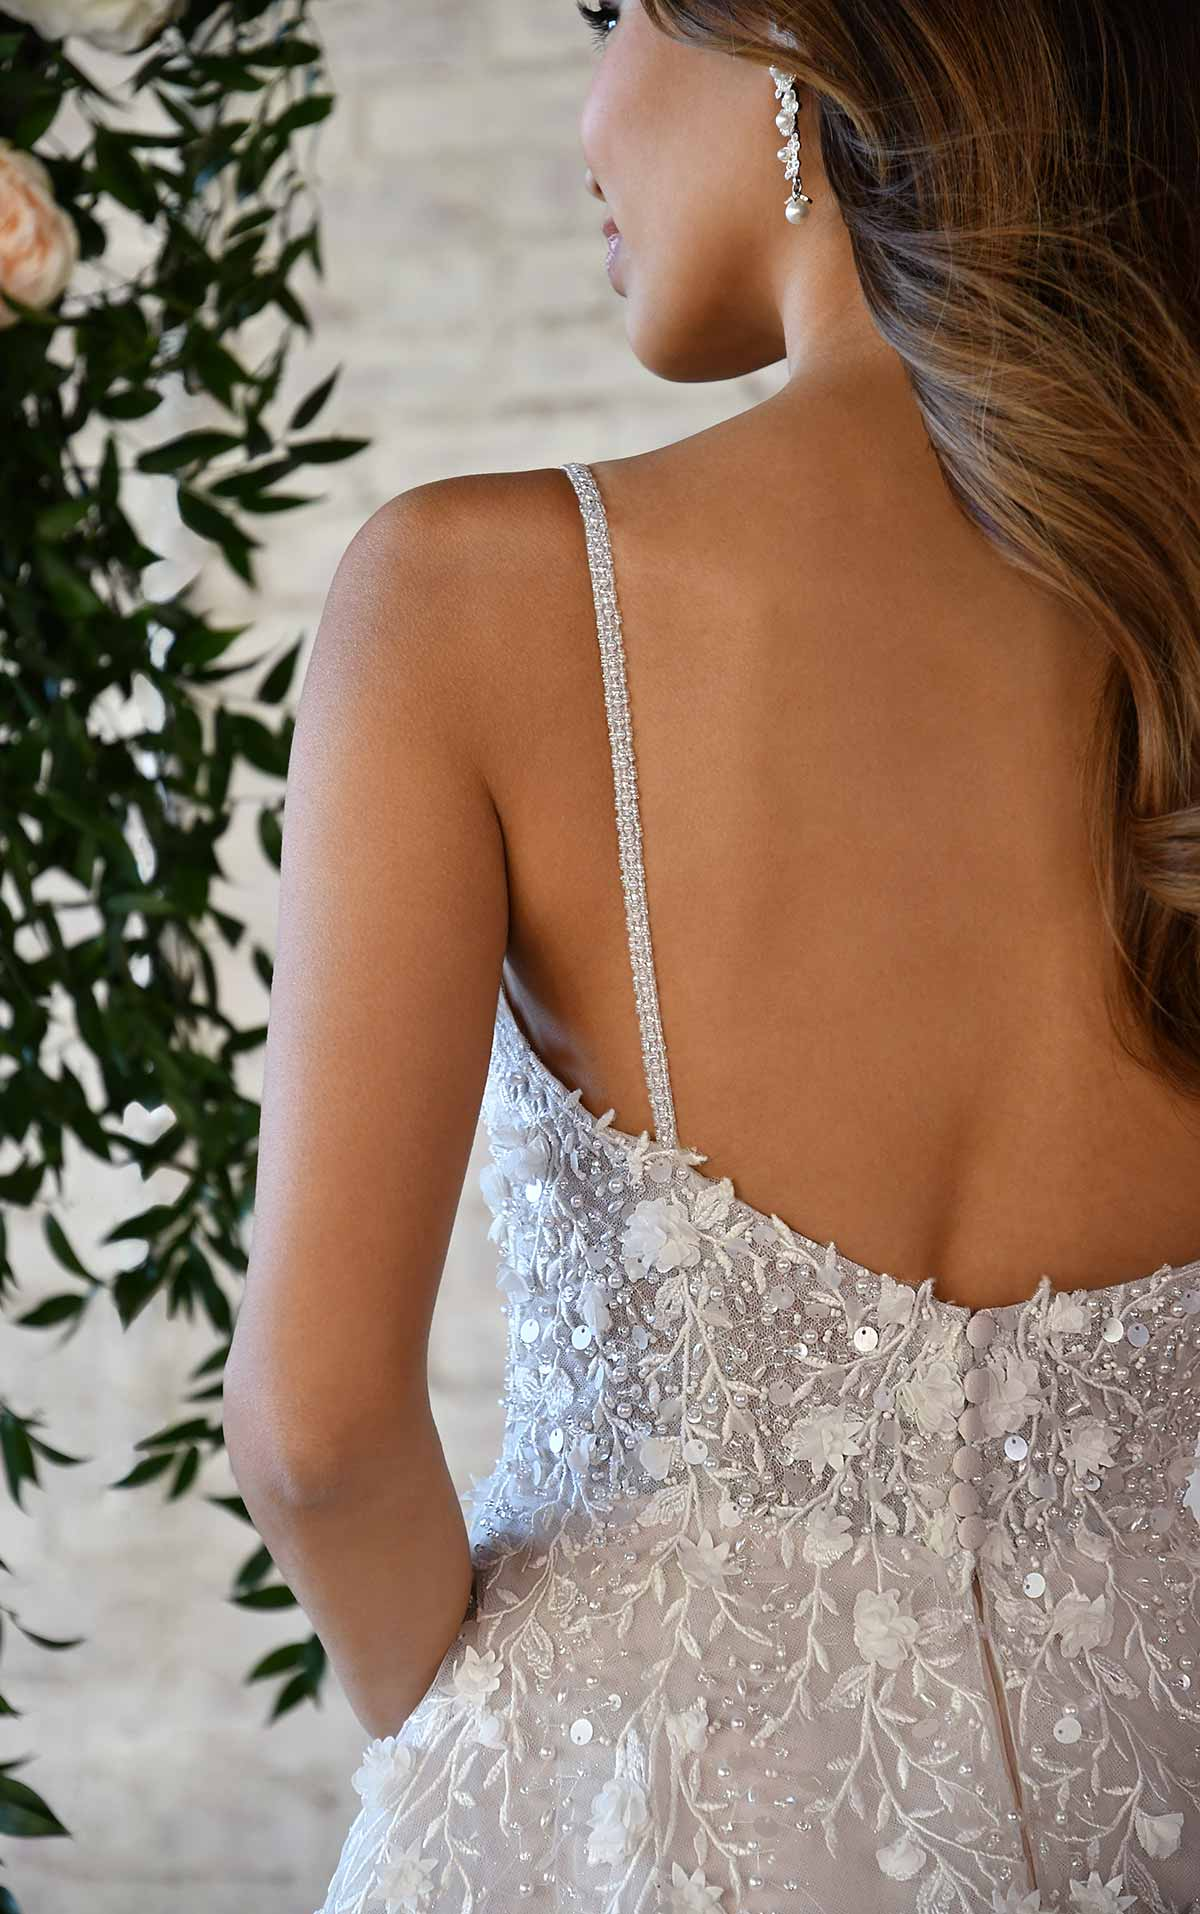 7322 Sweetheart Wedding Dress with Pearl, Floral and Sequin Embellishments by Stella York